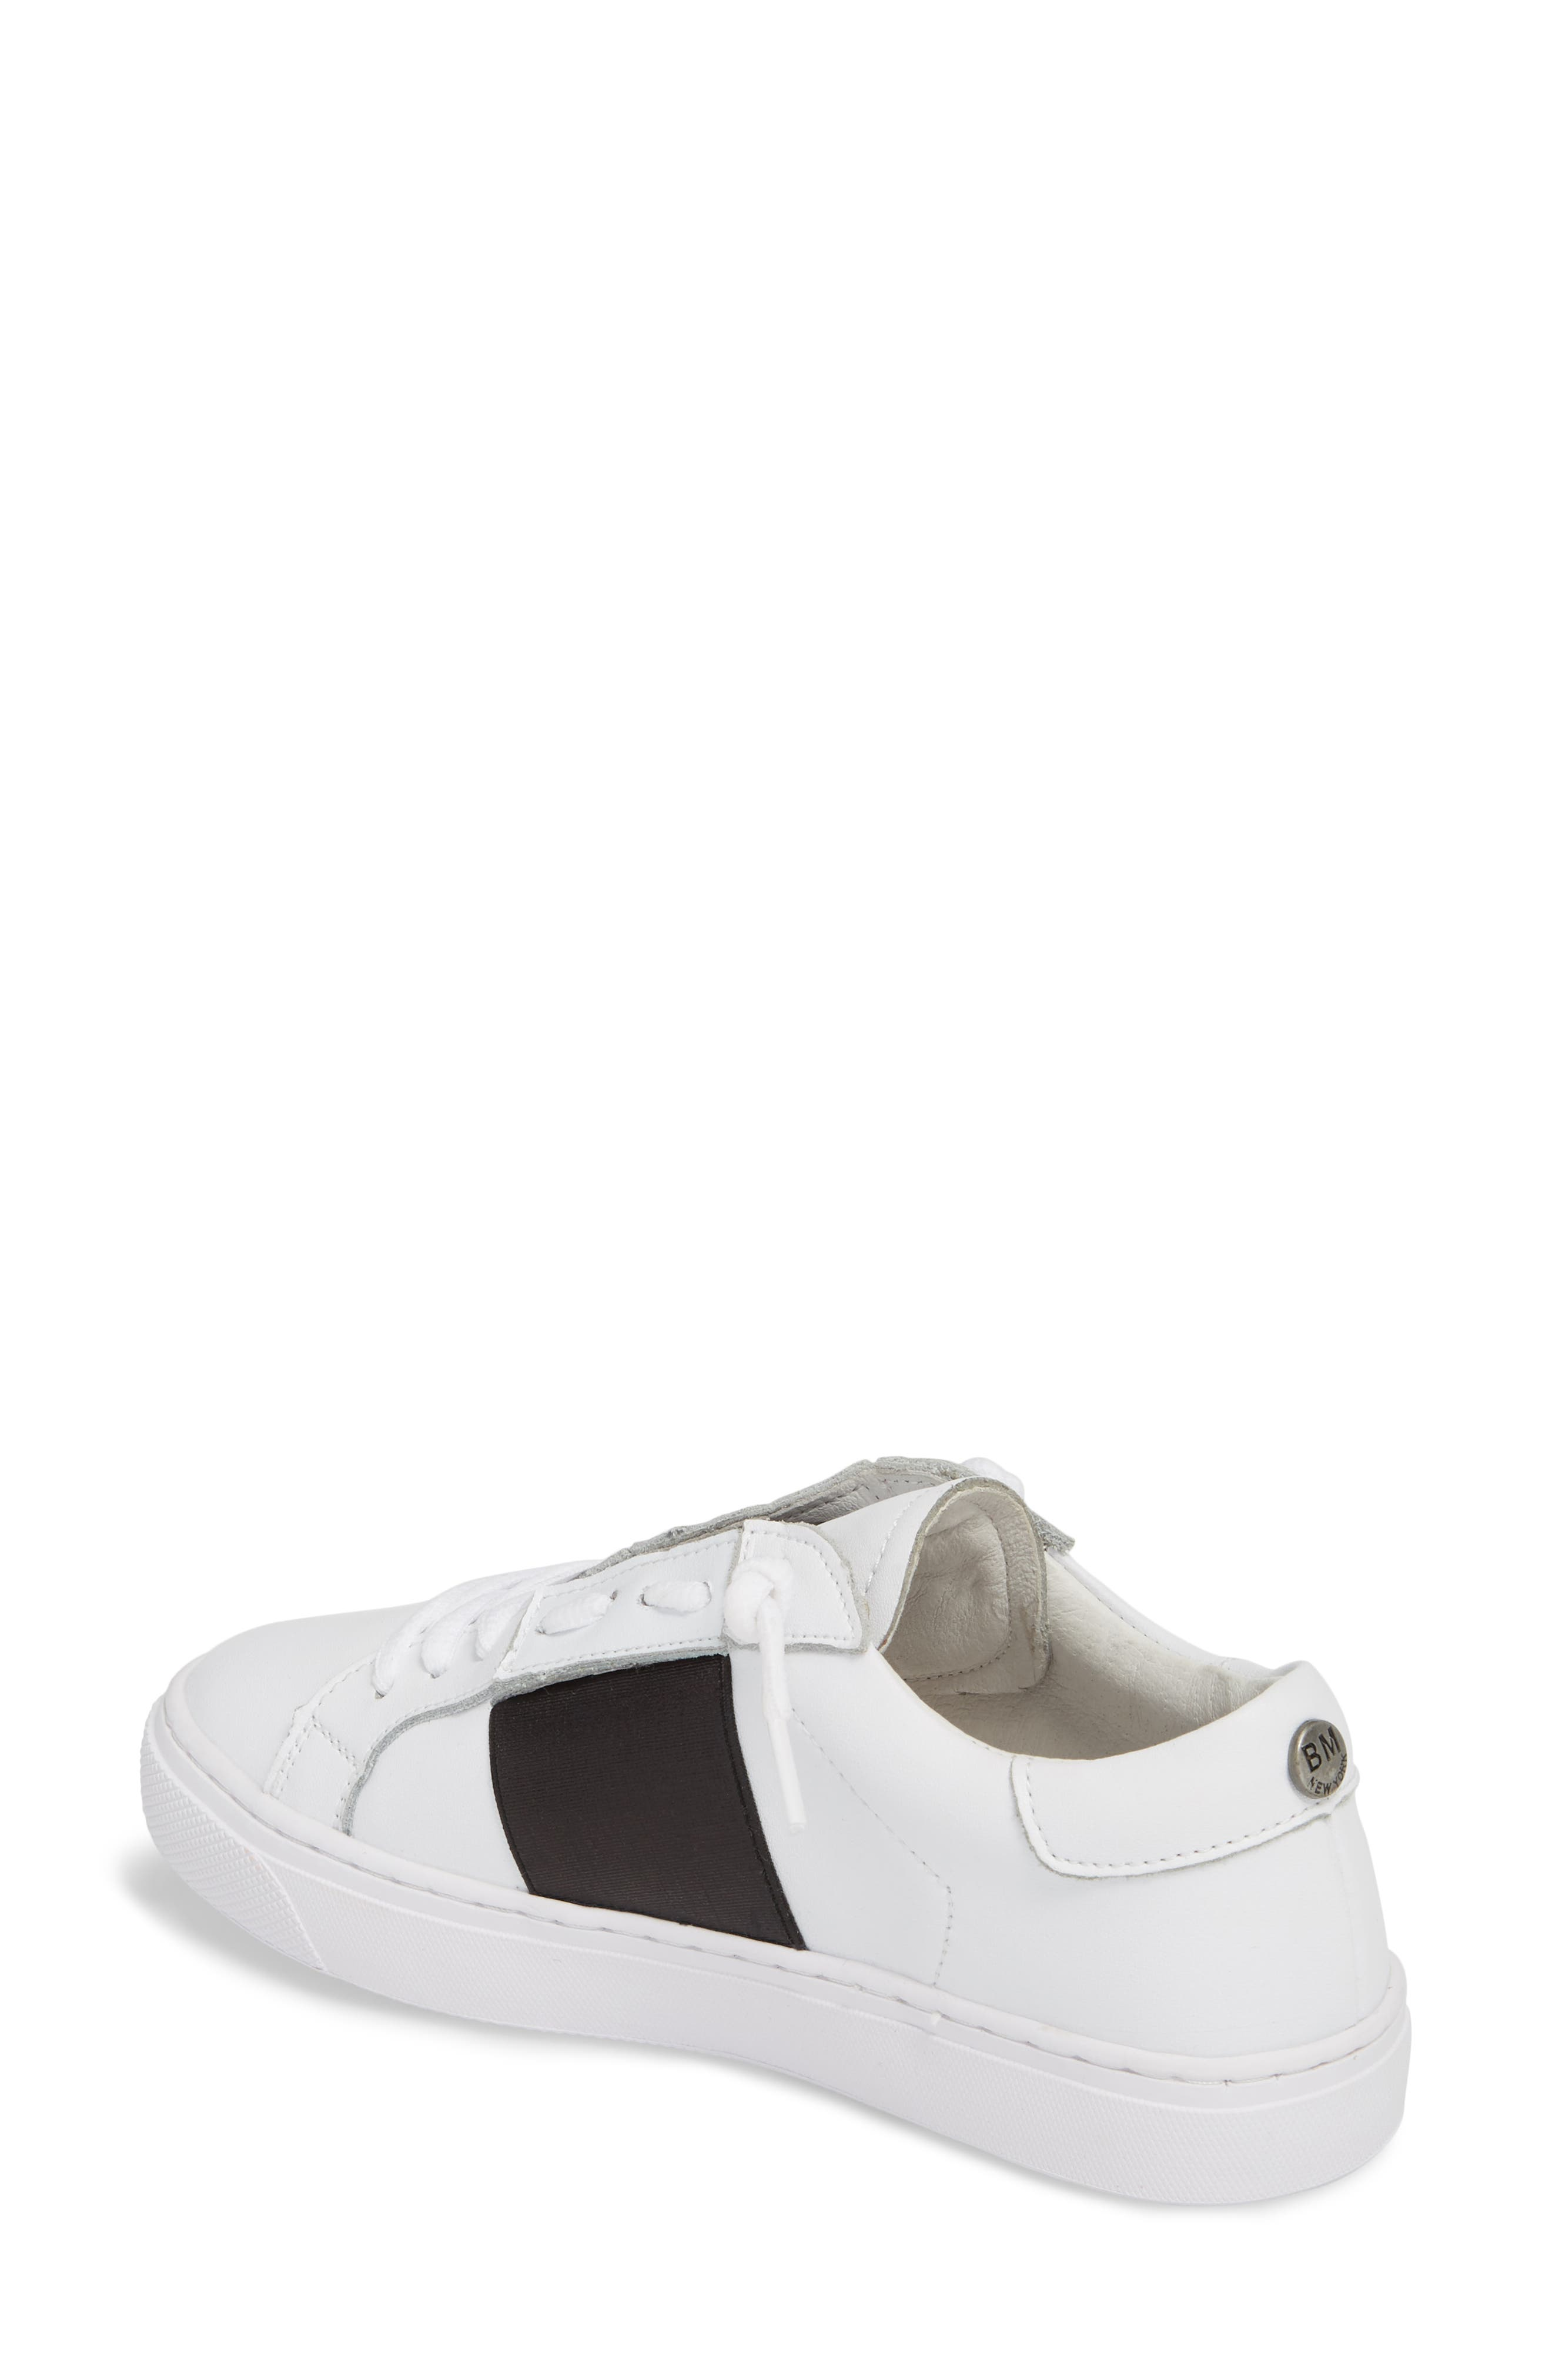 Slip-On Sneaker,                             Alternate thumbnail 2, color,                             BLACK LEATHER